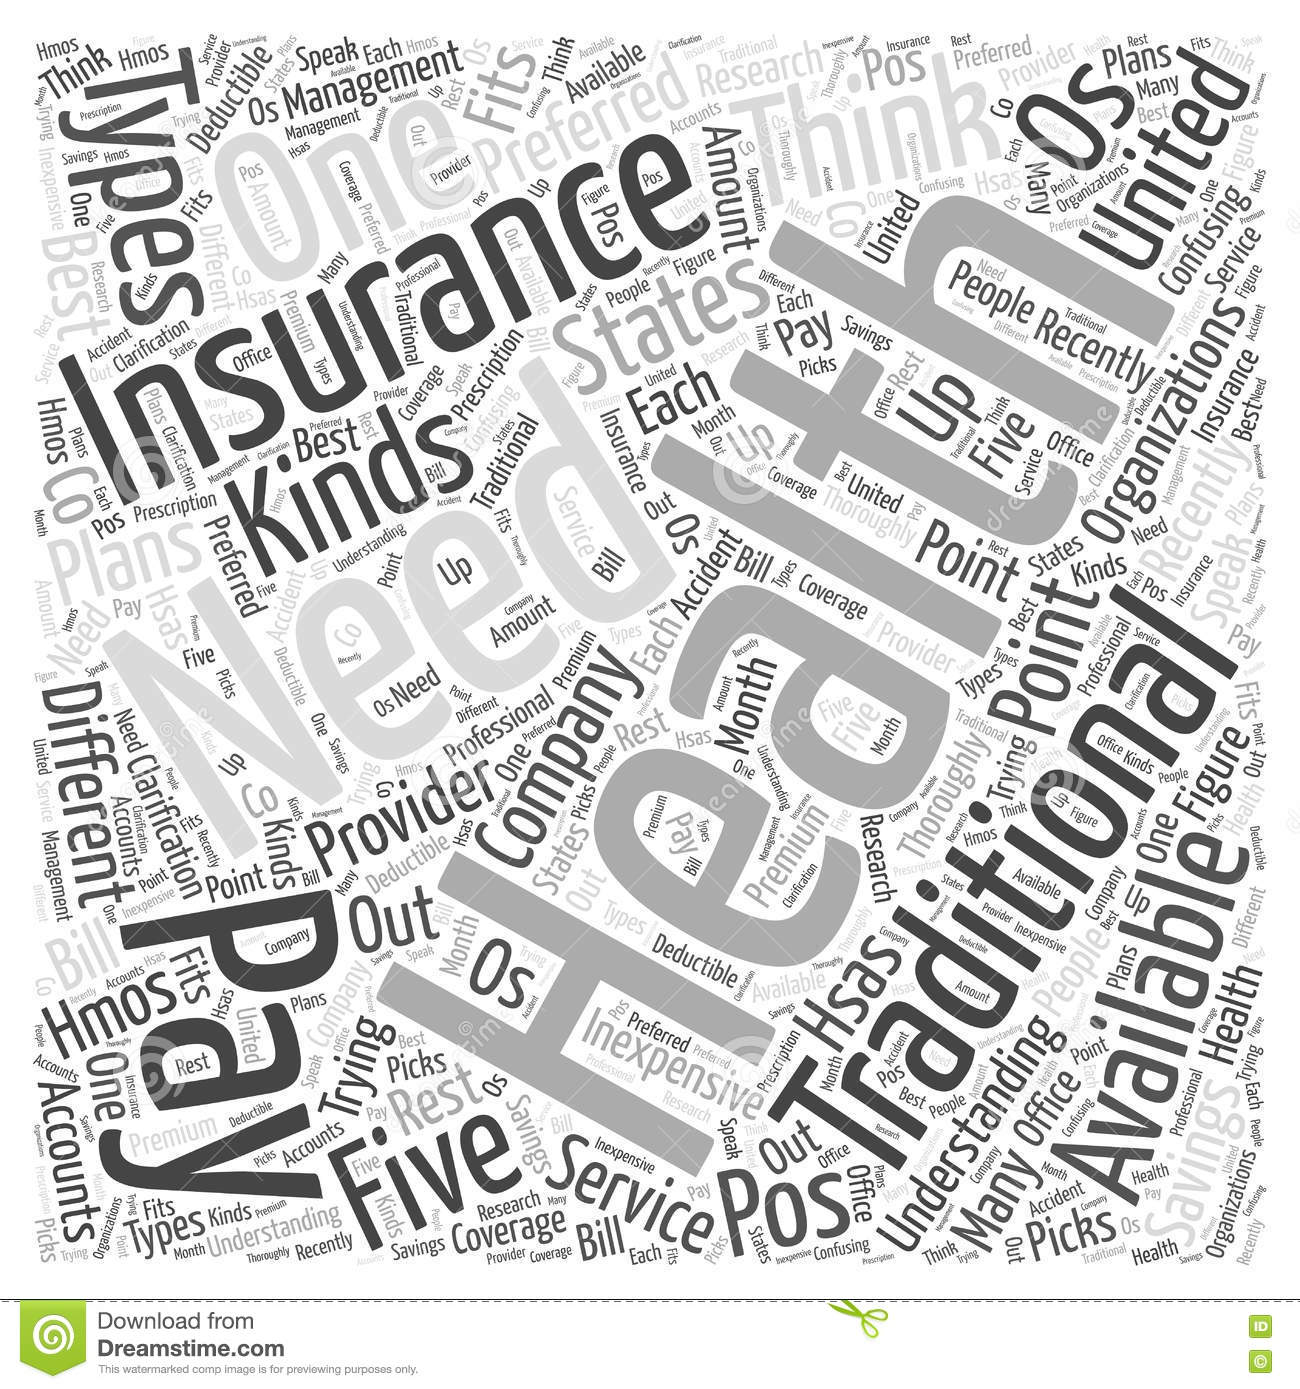 The Complete Guide to Health Insurance